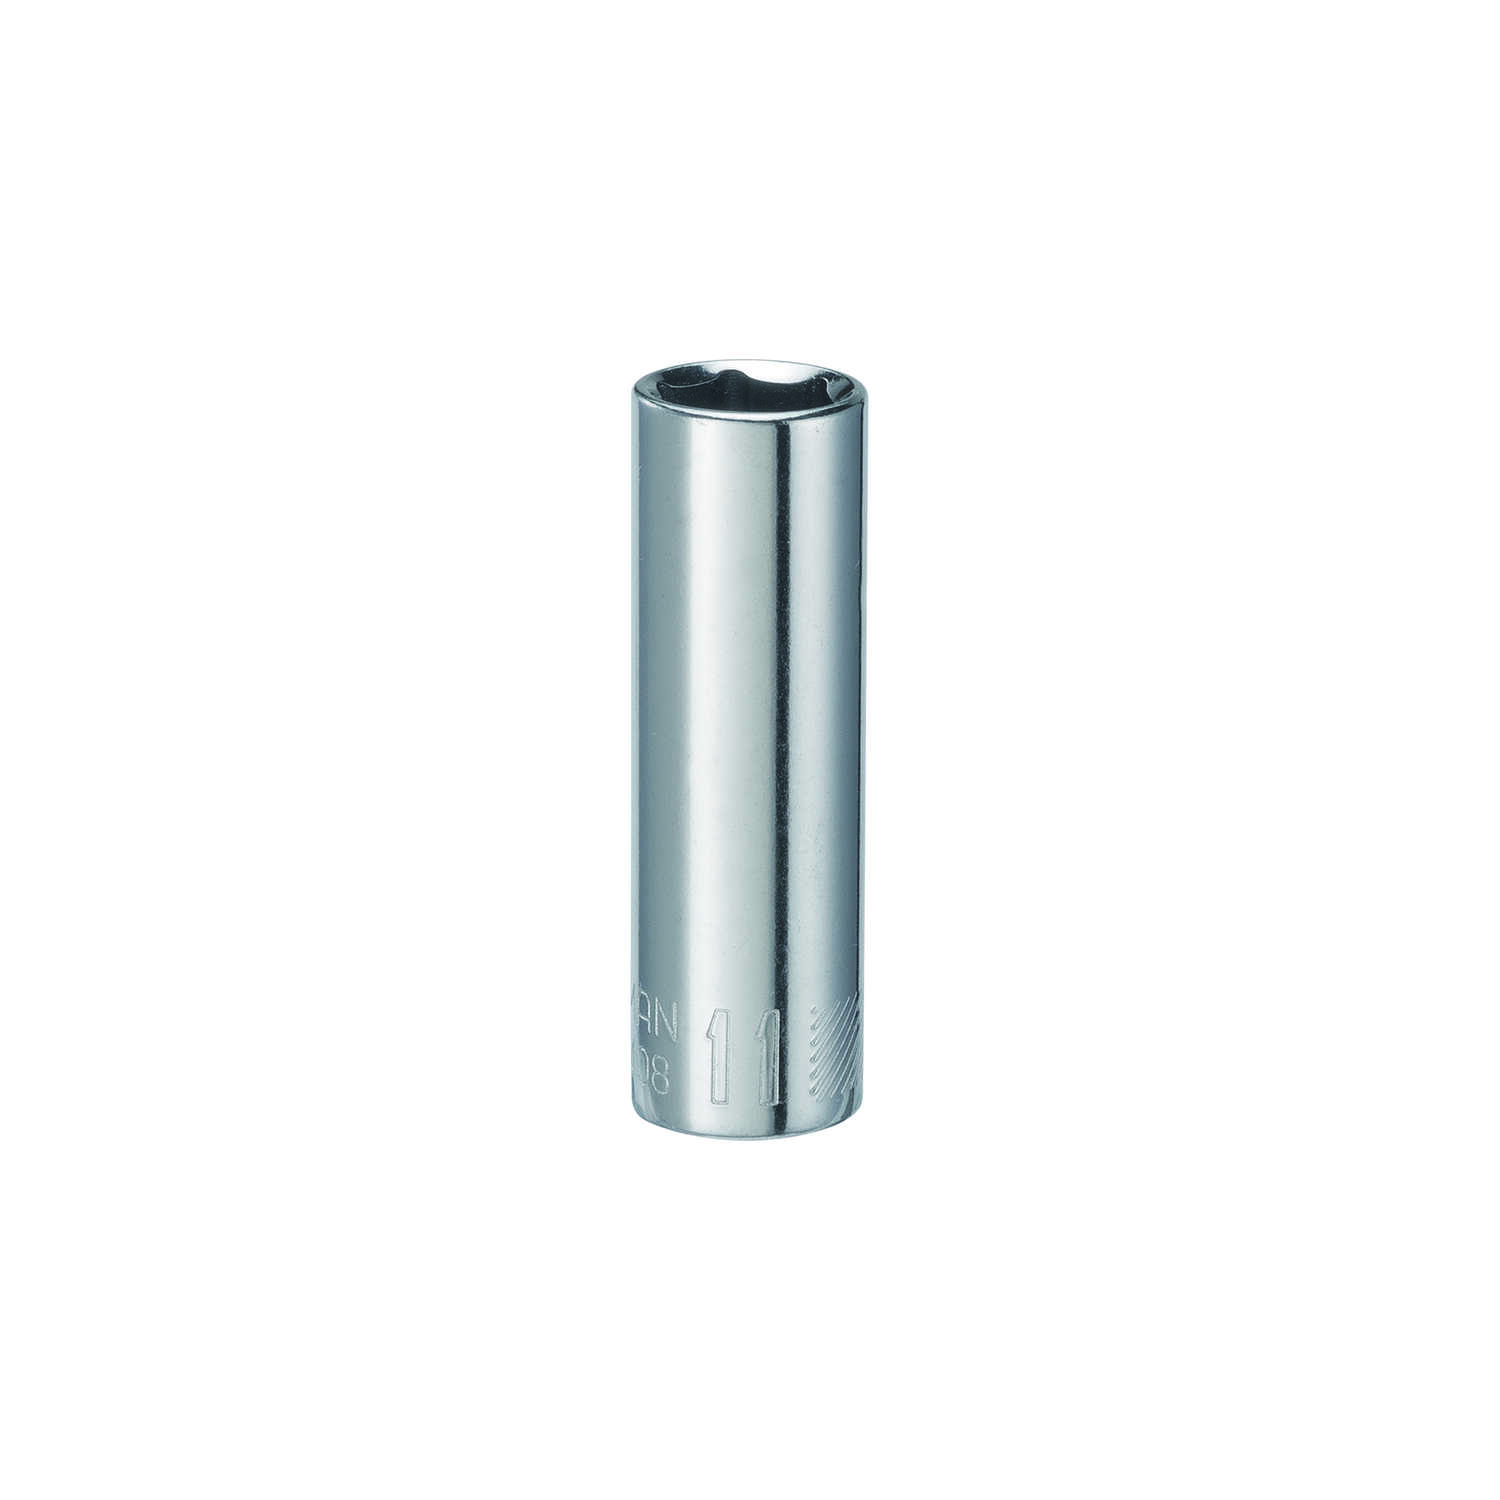 Craftsman  11 mm  x 1/4 in. drive  Metric  6 Point Deep  Socket  1 pc.